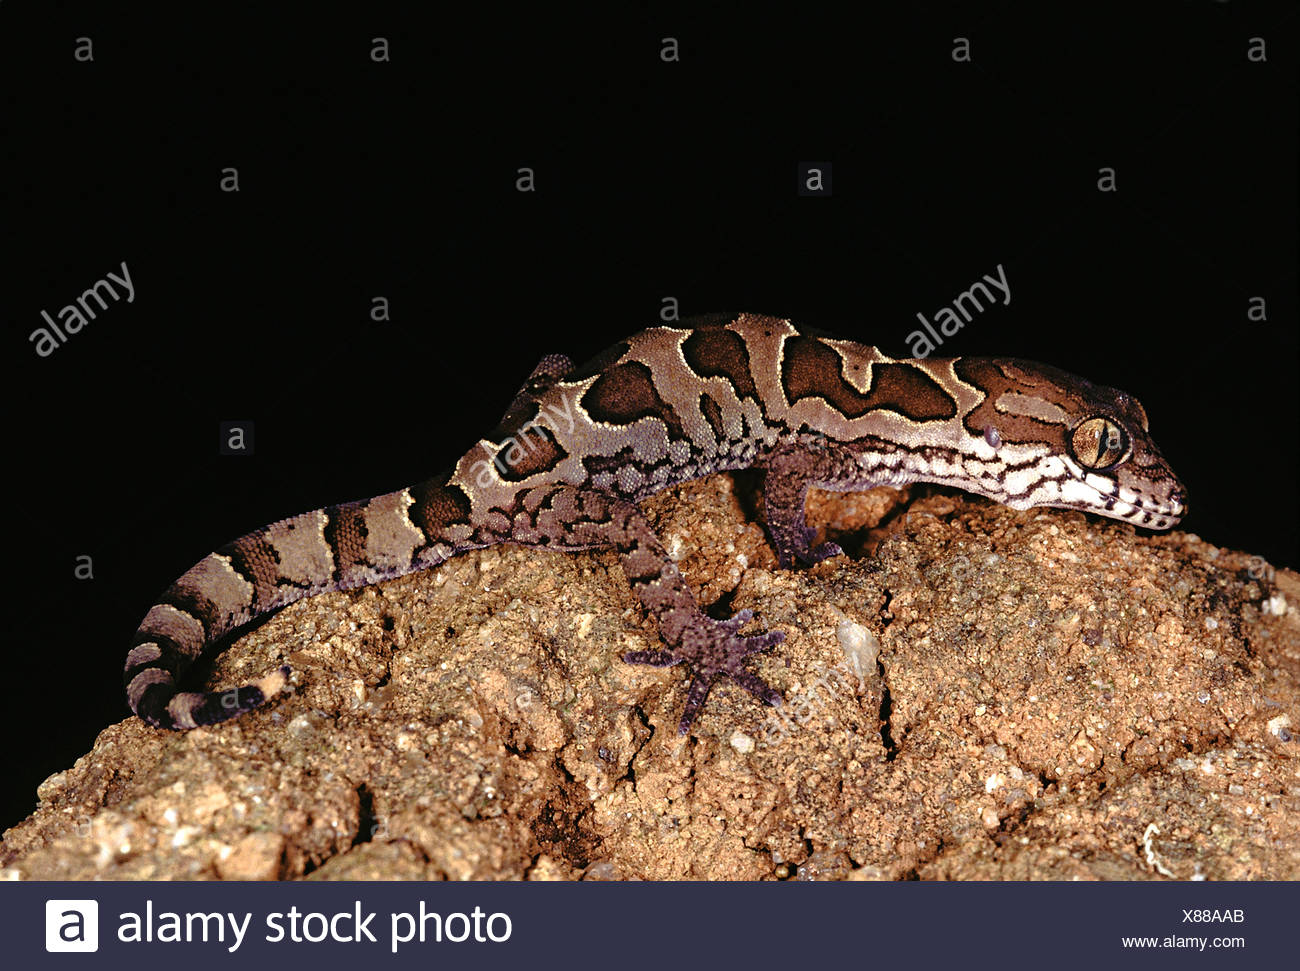 Clouded ground gecko. Geckoella Nebulosa. A ground dwelling gecko found in central India. - Stock Image